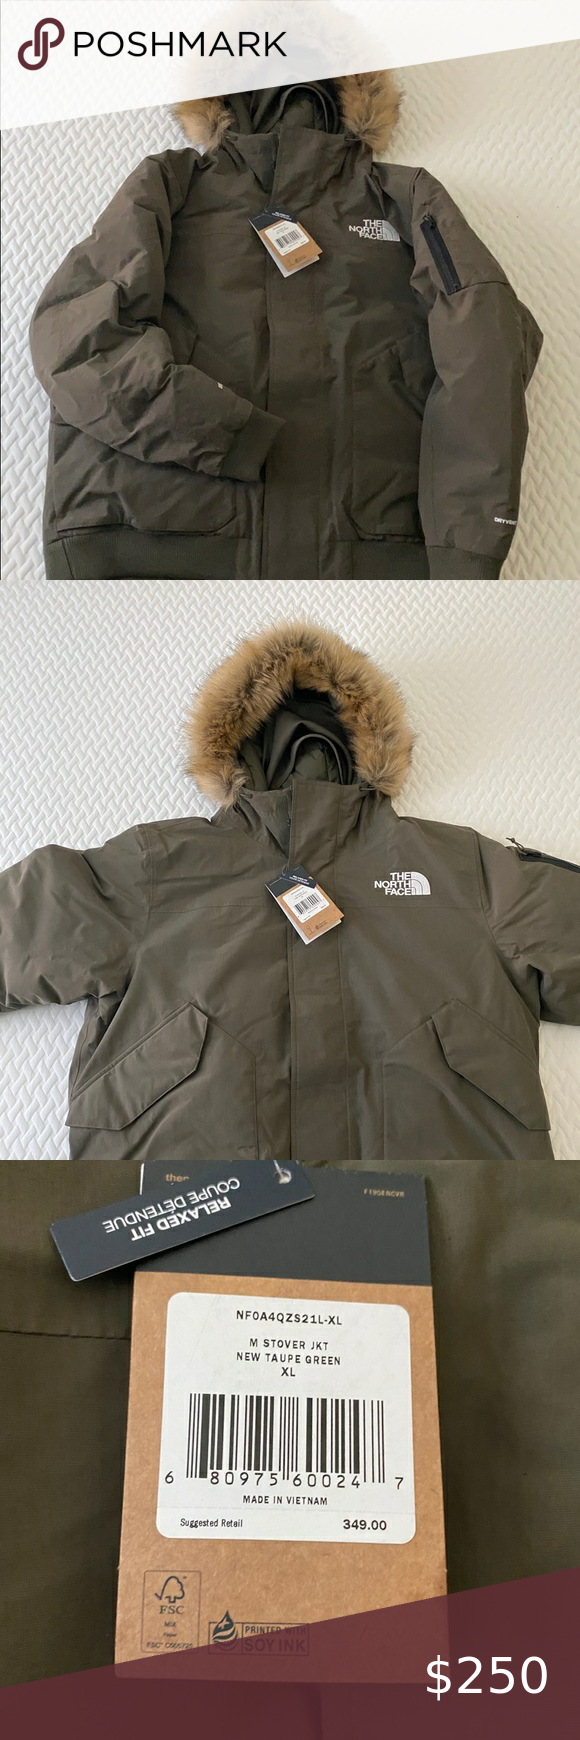 The North Face Men S Stover Jacket North Face Mens The North Face North Face Jacket [ 1740 x 580 Pixel ]